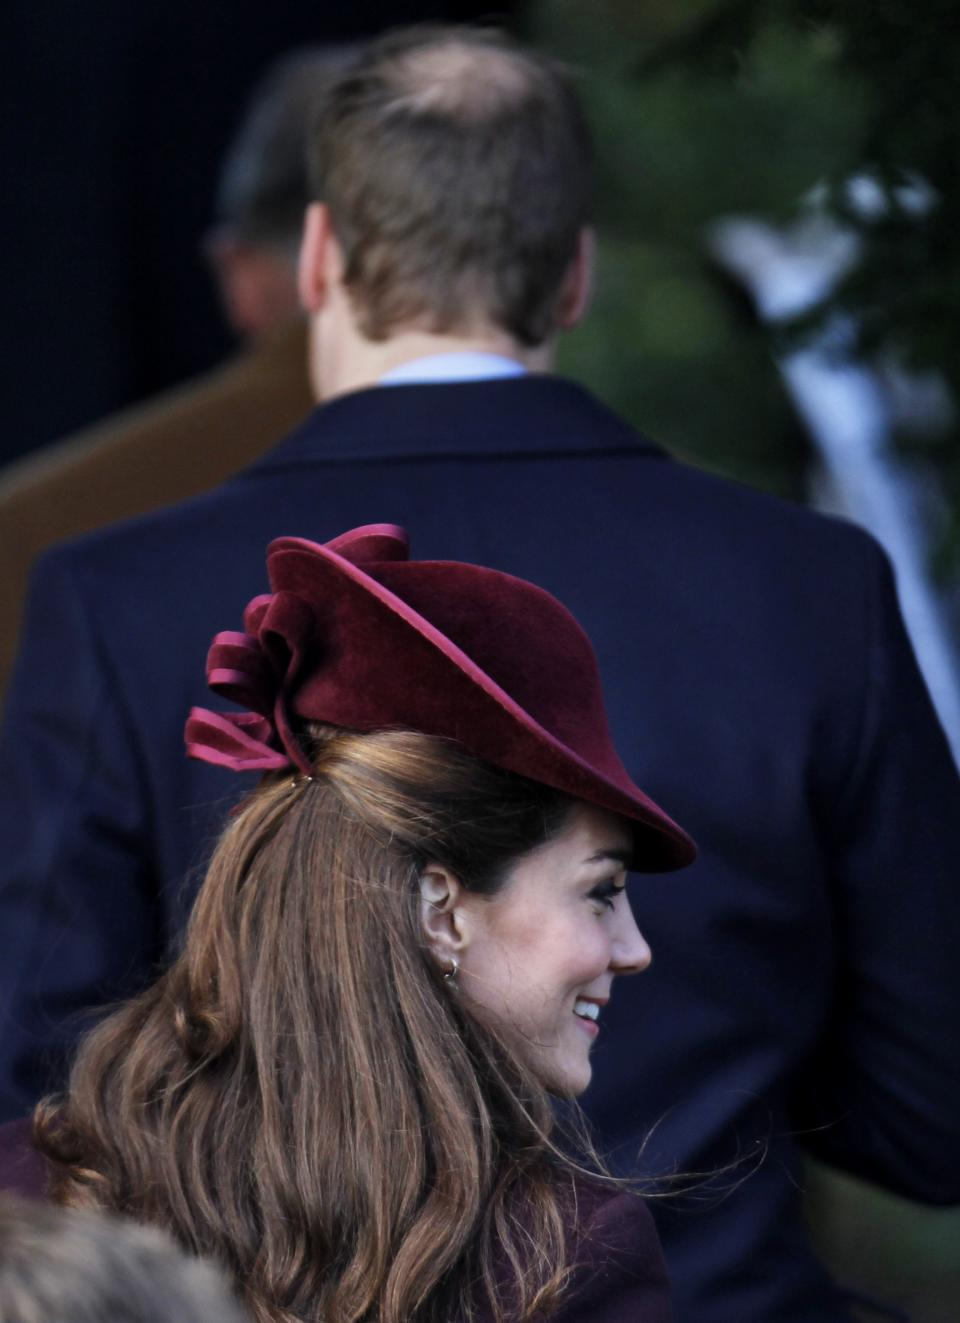 Kate, Duchess of Cambridge, follows her husband Prince William, as they arrive arrive to attend a Christmas Service with other members of the royal family at St. Mary's church in the grounds of Sandringham Estate, the Queen's Norfolk retreat, England, Sunday, Dec. 25, 2011. (AP Photo/Lefteris Pitarakis)